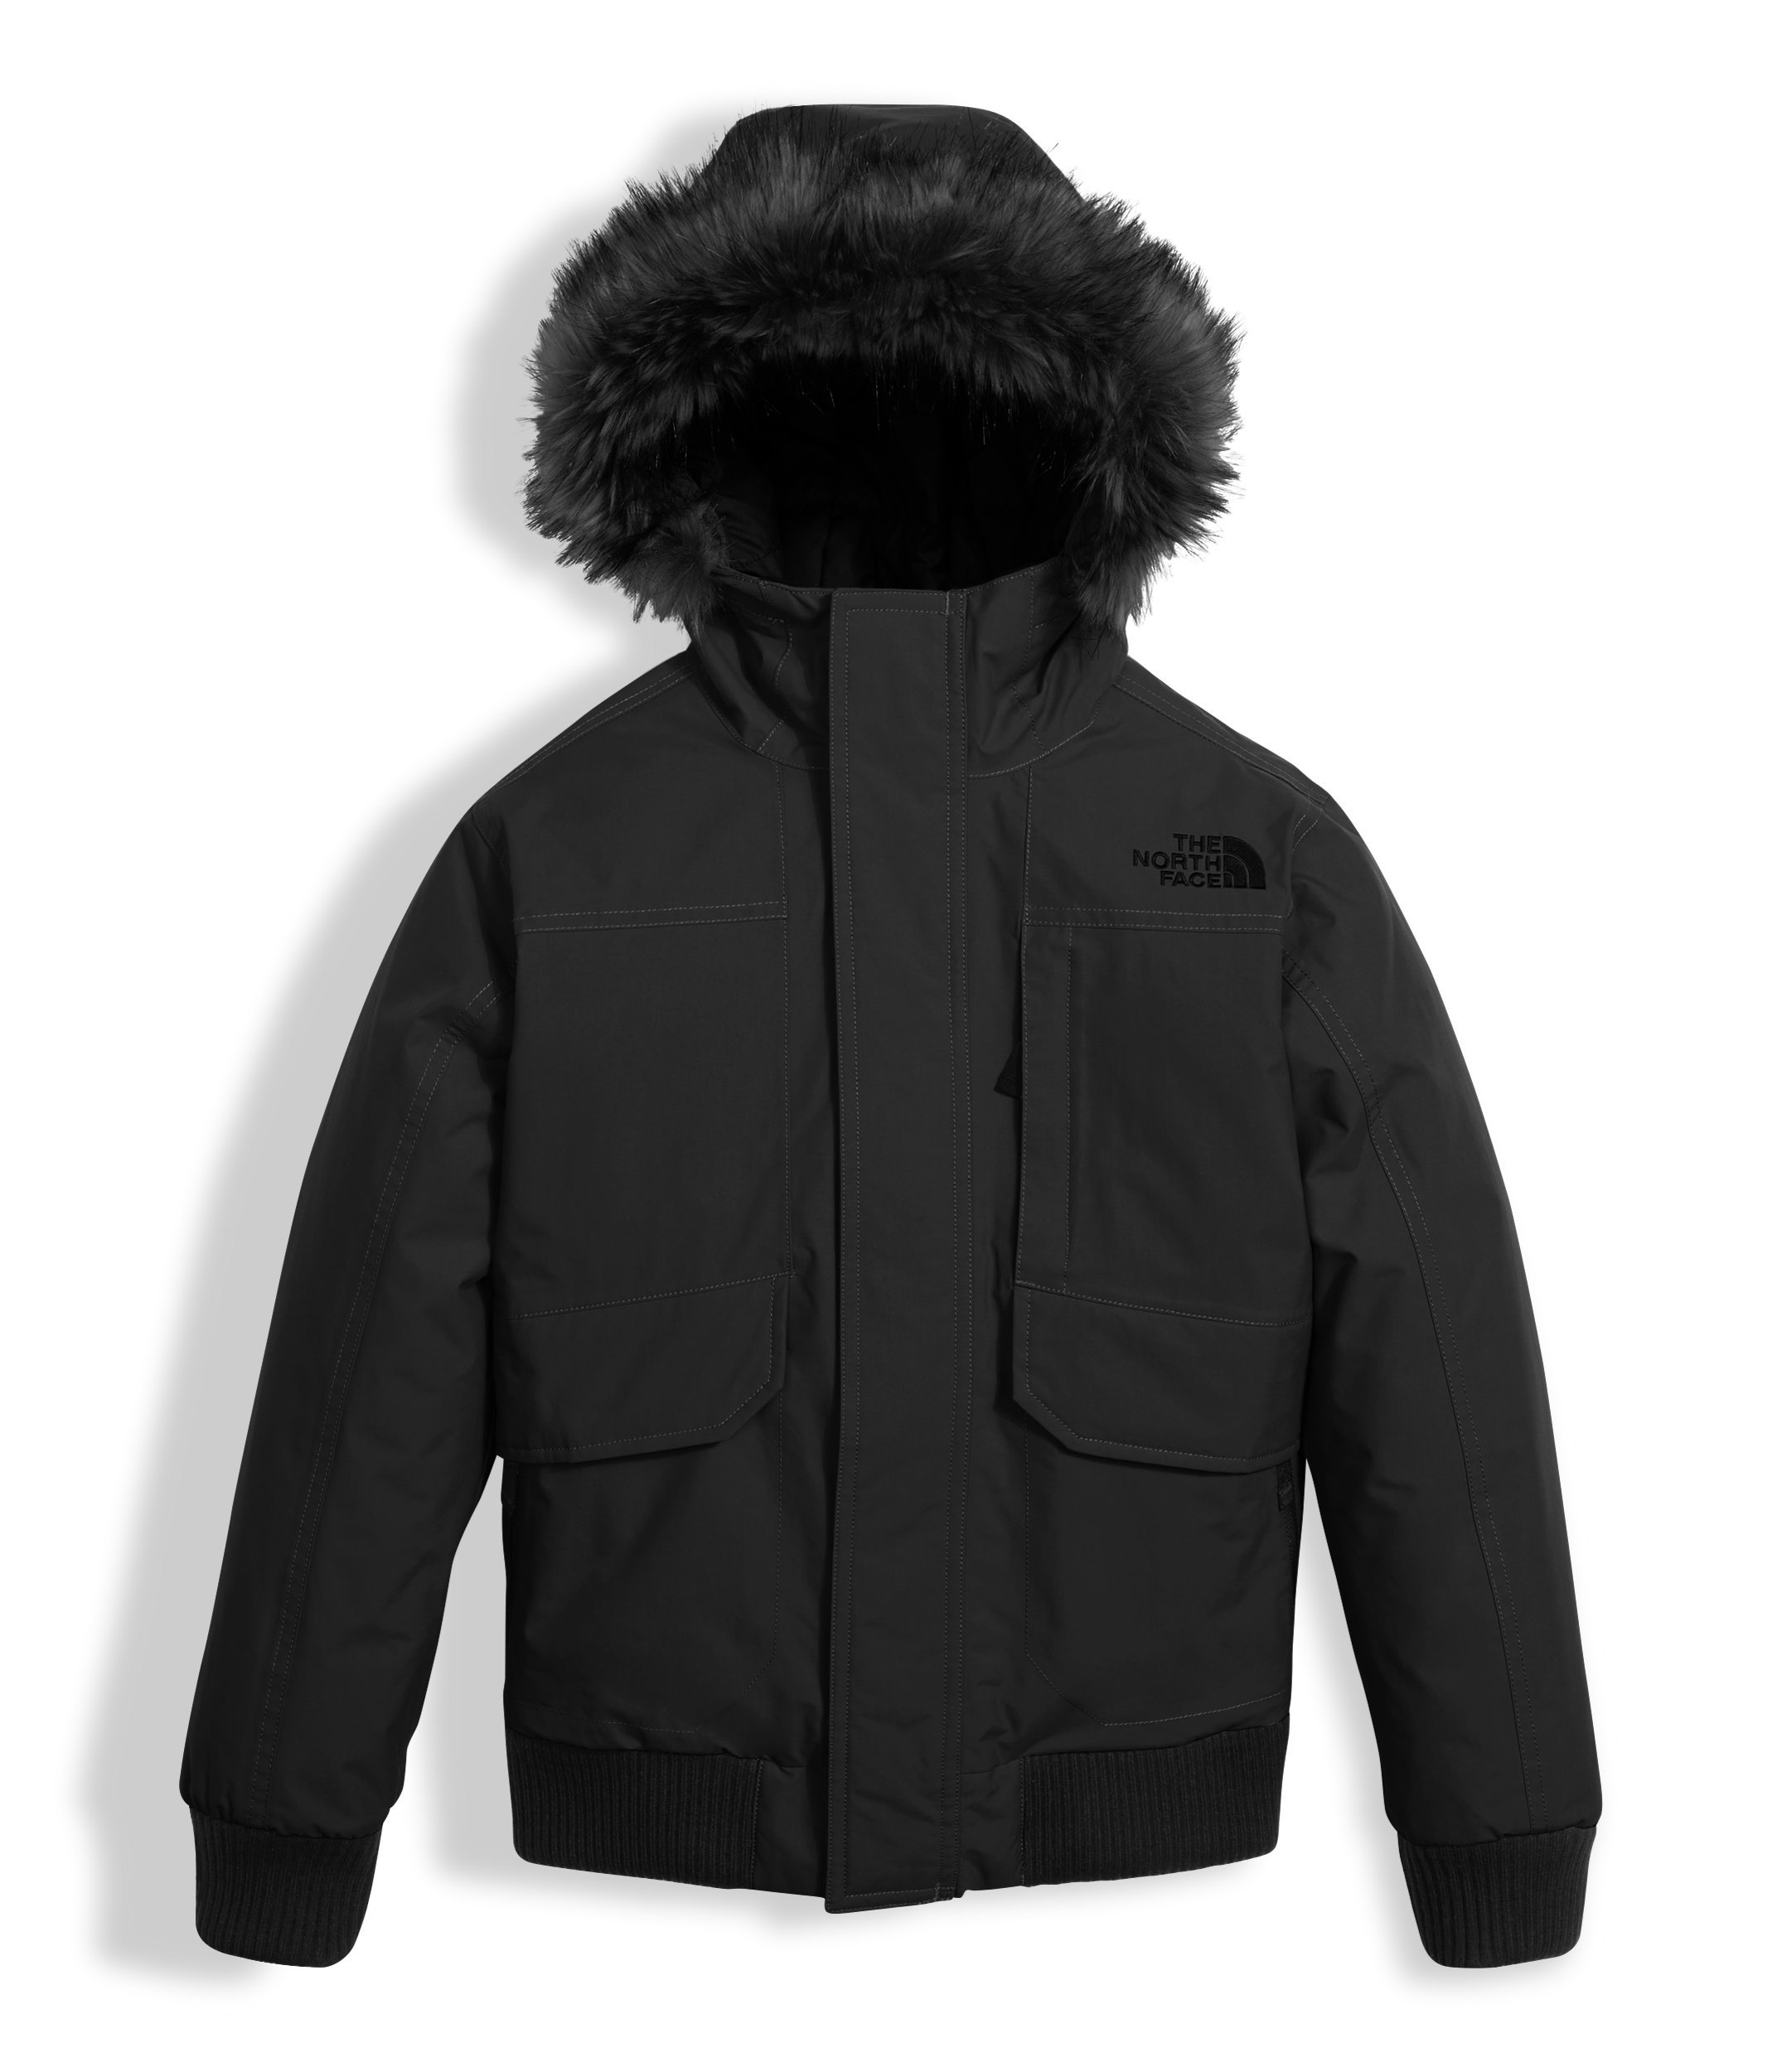 The North Face Boy's Gotham Down Jacket - Black - S (Past Season) by The North Face